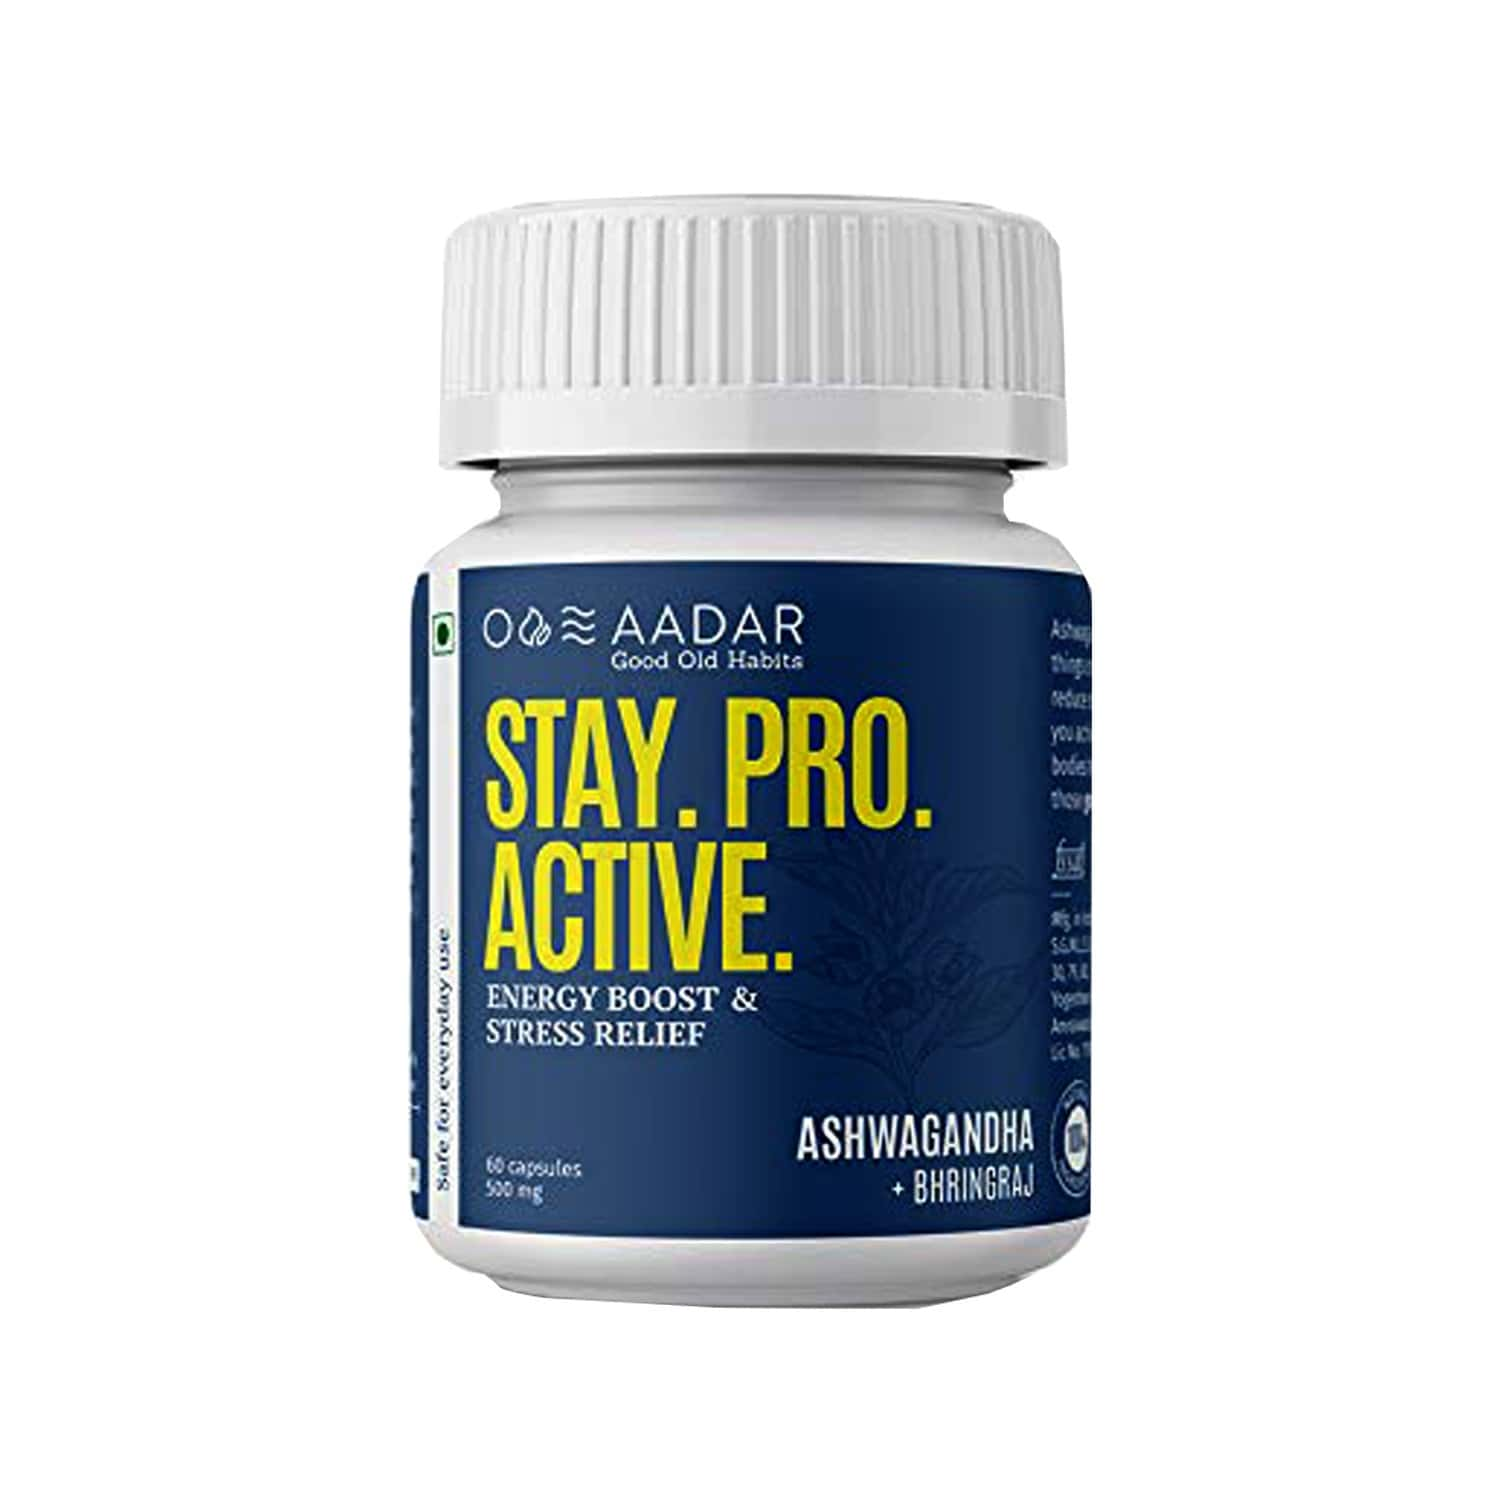 Aadar Stay. Pro. Active Weight Management Capsules Bottle Of 60